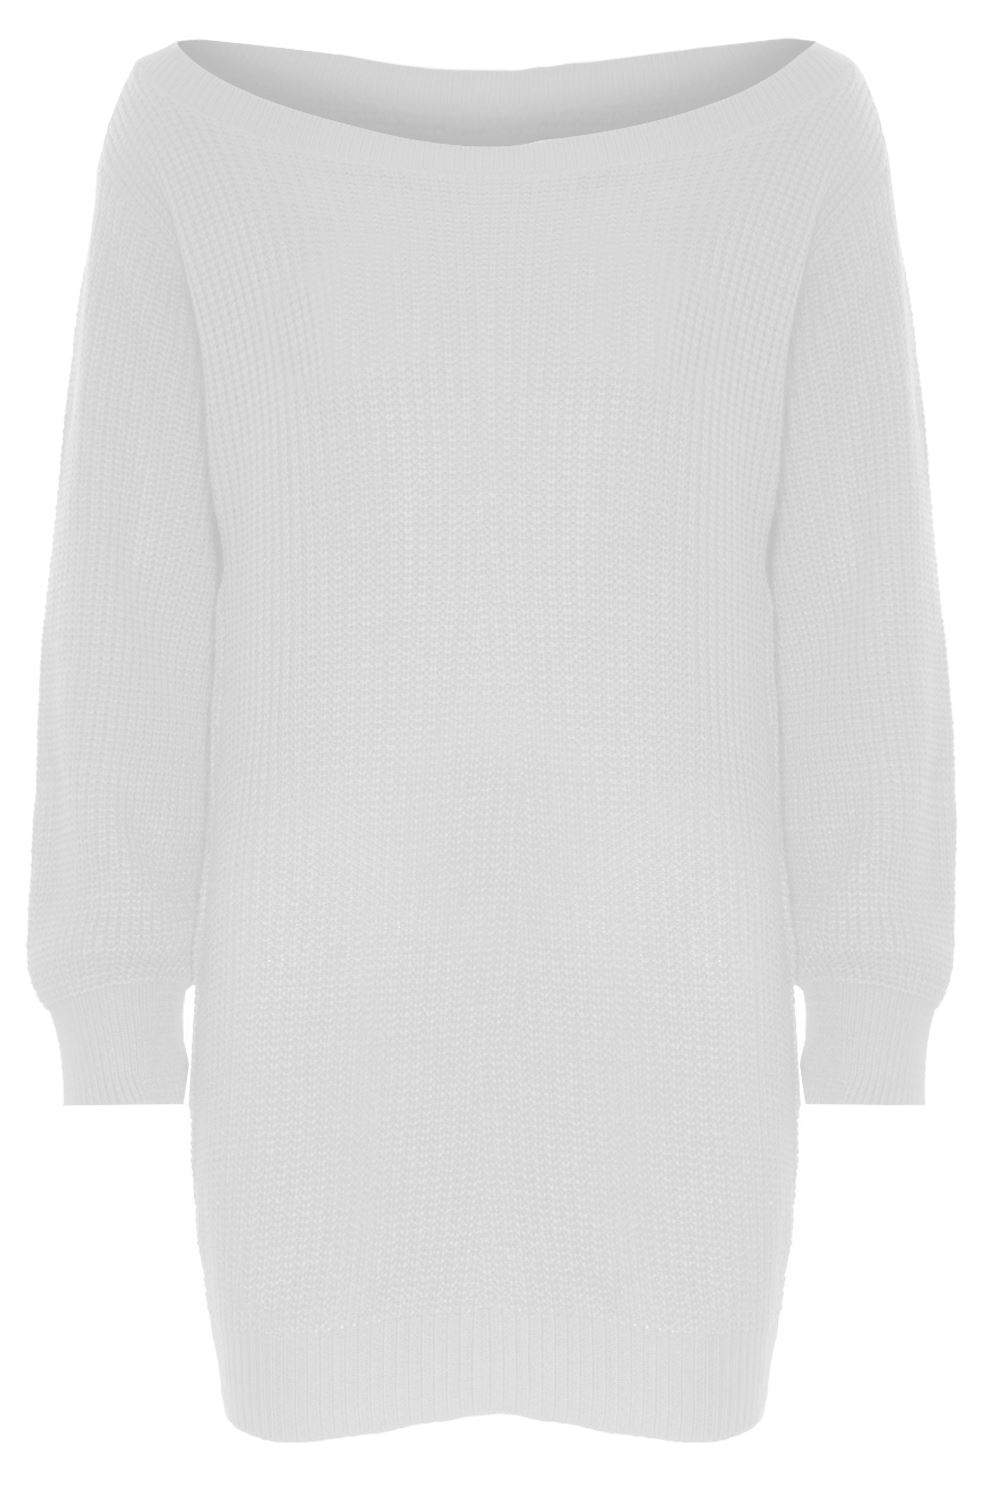 Ladies Womens Off Shoulder Chunky Knit Oversized Baggy Tunic ...